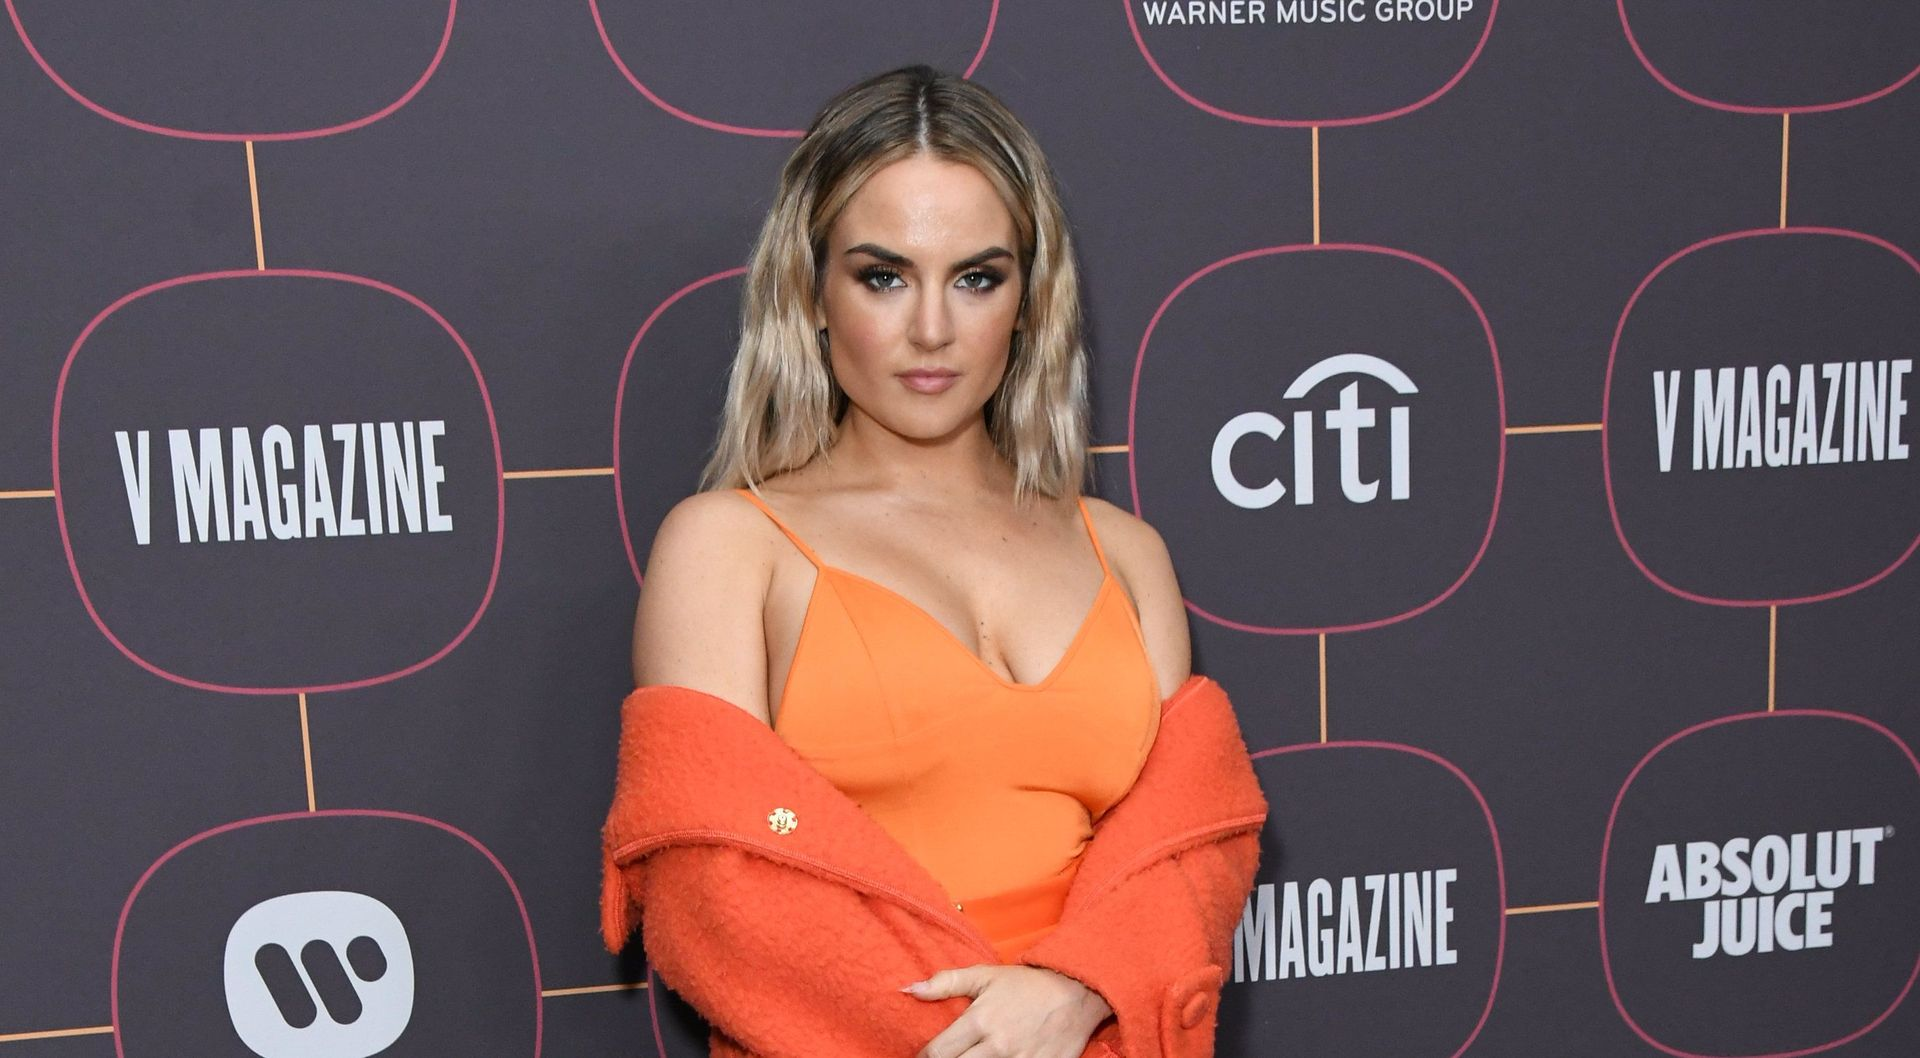 Jojo Shows Off Her Tits At The Warner Music Group Pre Grammy Party In Hollywood 0028